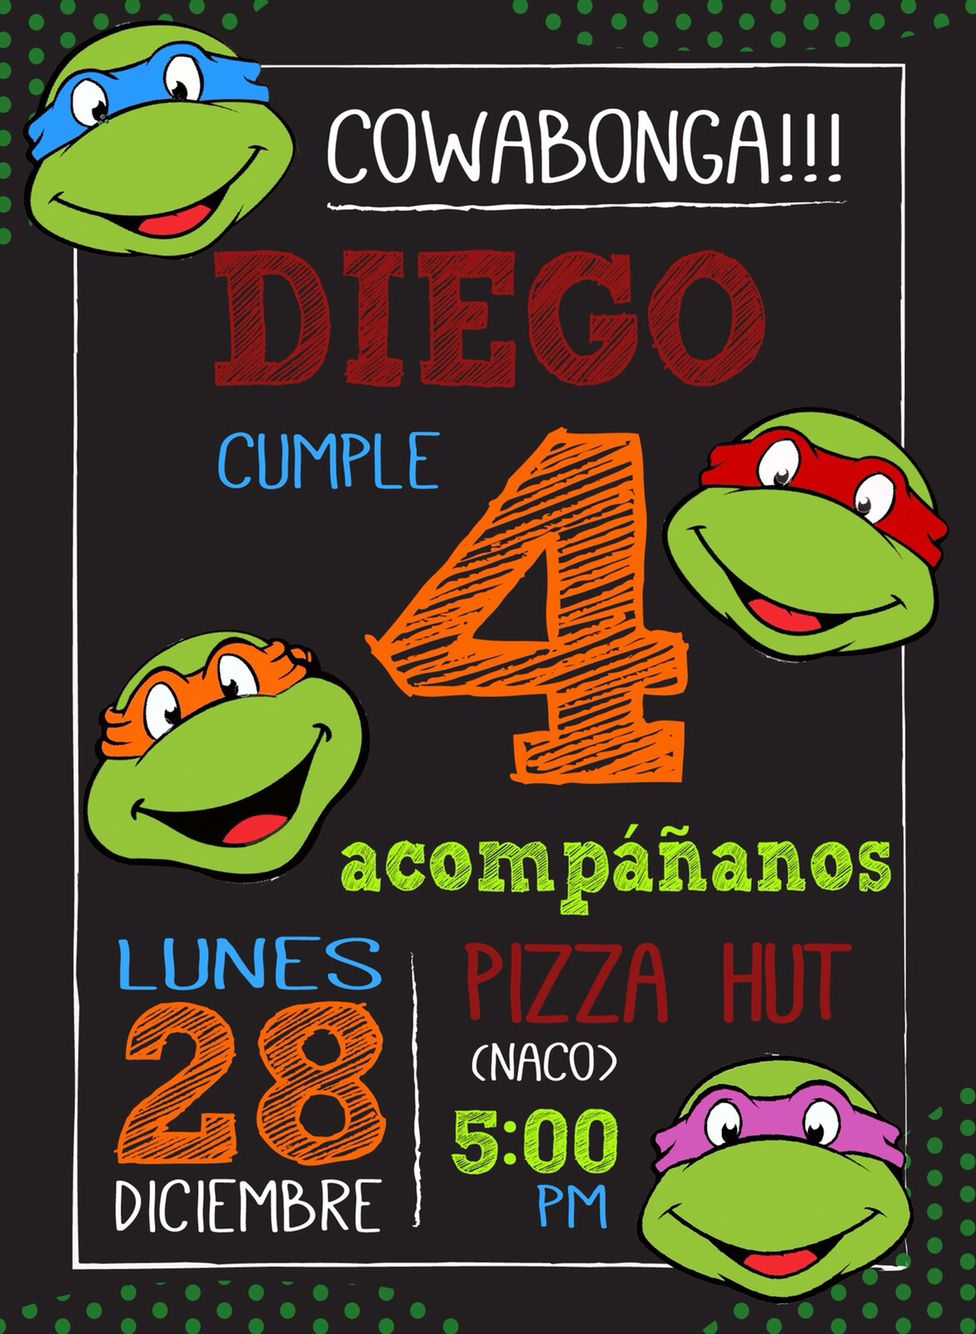 Ninja turtle invitation digital invitations pinterest ninja turtle invitation digital solutioingenieria Images